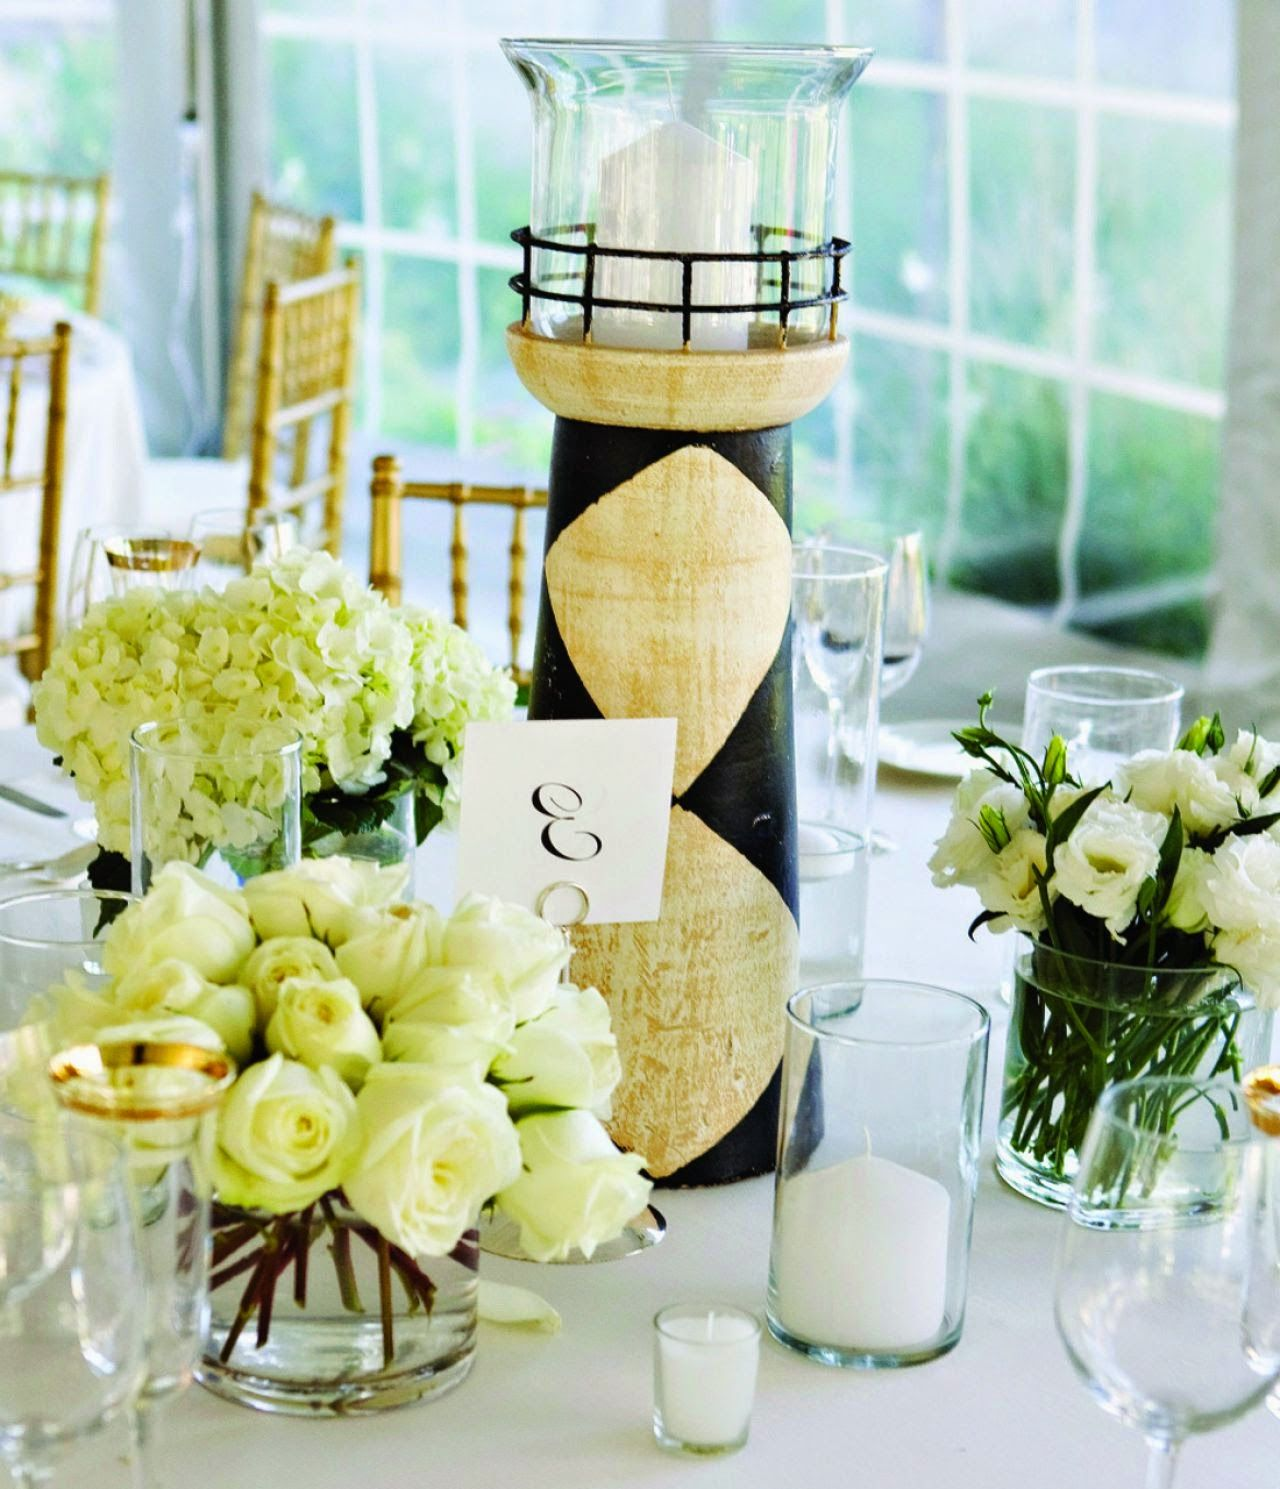 34 Best Images About Wedding Centerpieces On Pinterest: Top 7 Beach Wedding Centerpiece Ideas